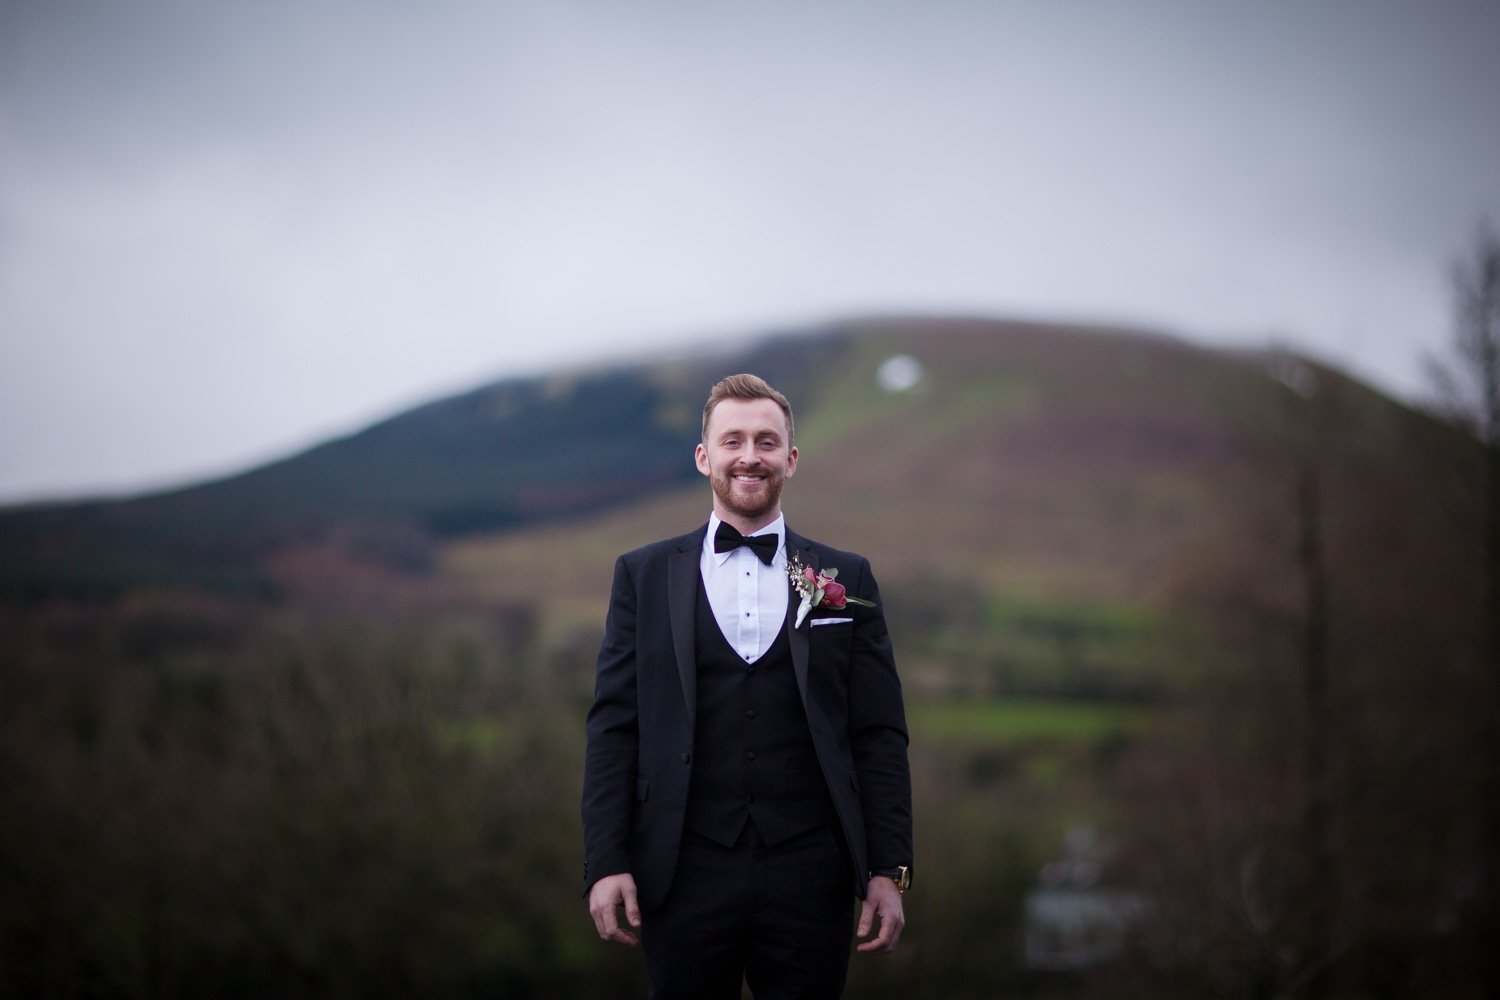 Mark_Barnes_Northern_Ireland_wedding_photographer_Innishowen_Gateway_Donegal_Wedding_photography_Donegal_wedding_photographer-14.jpg